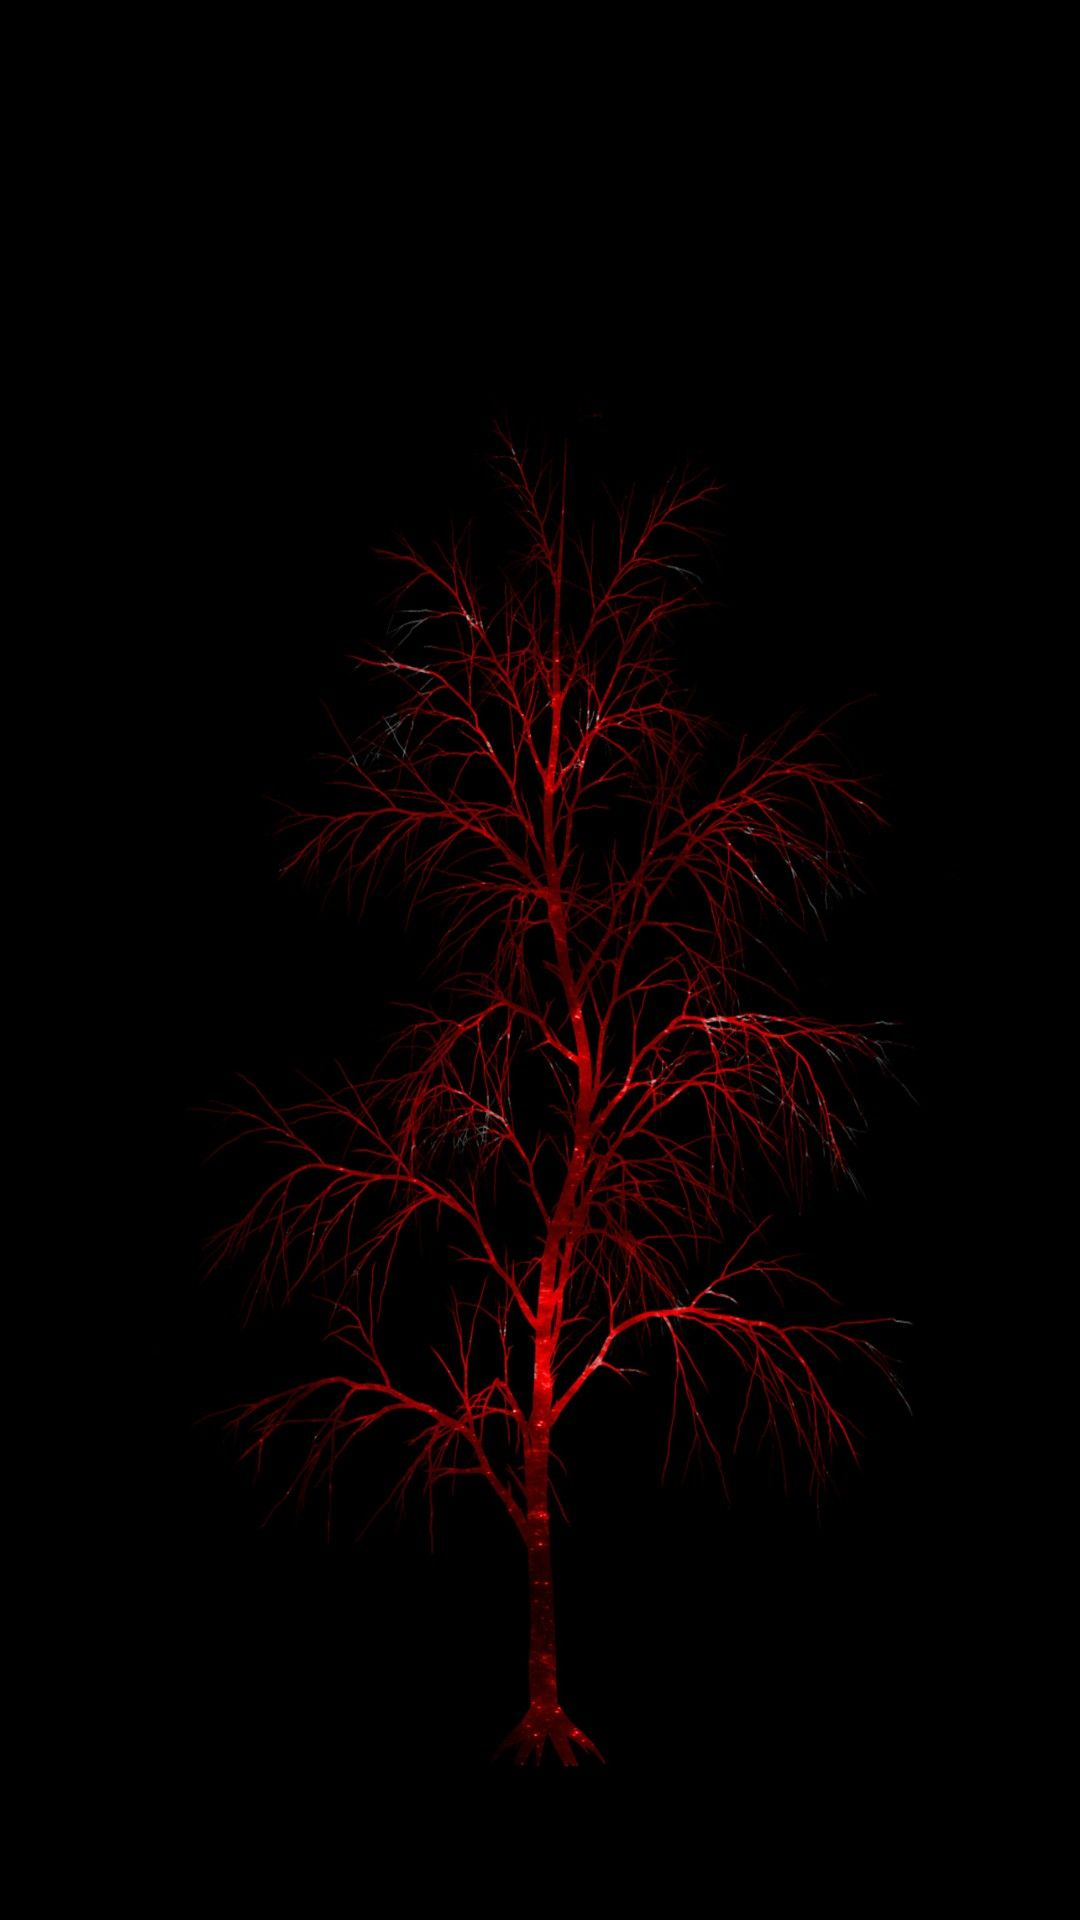 Black And Red Black And Red Wallpaper S8 Wallpaper Iphone